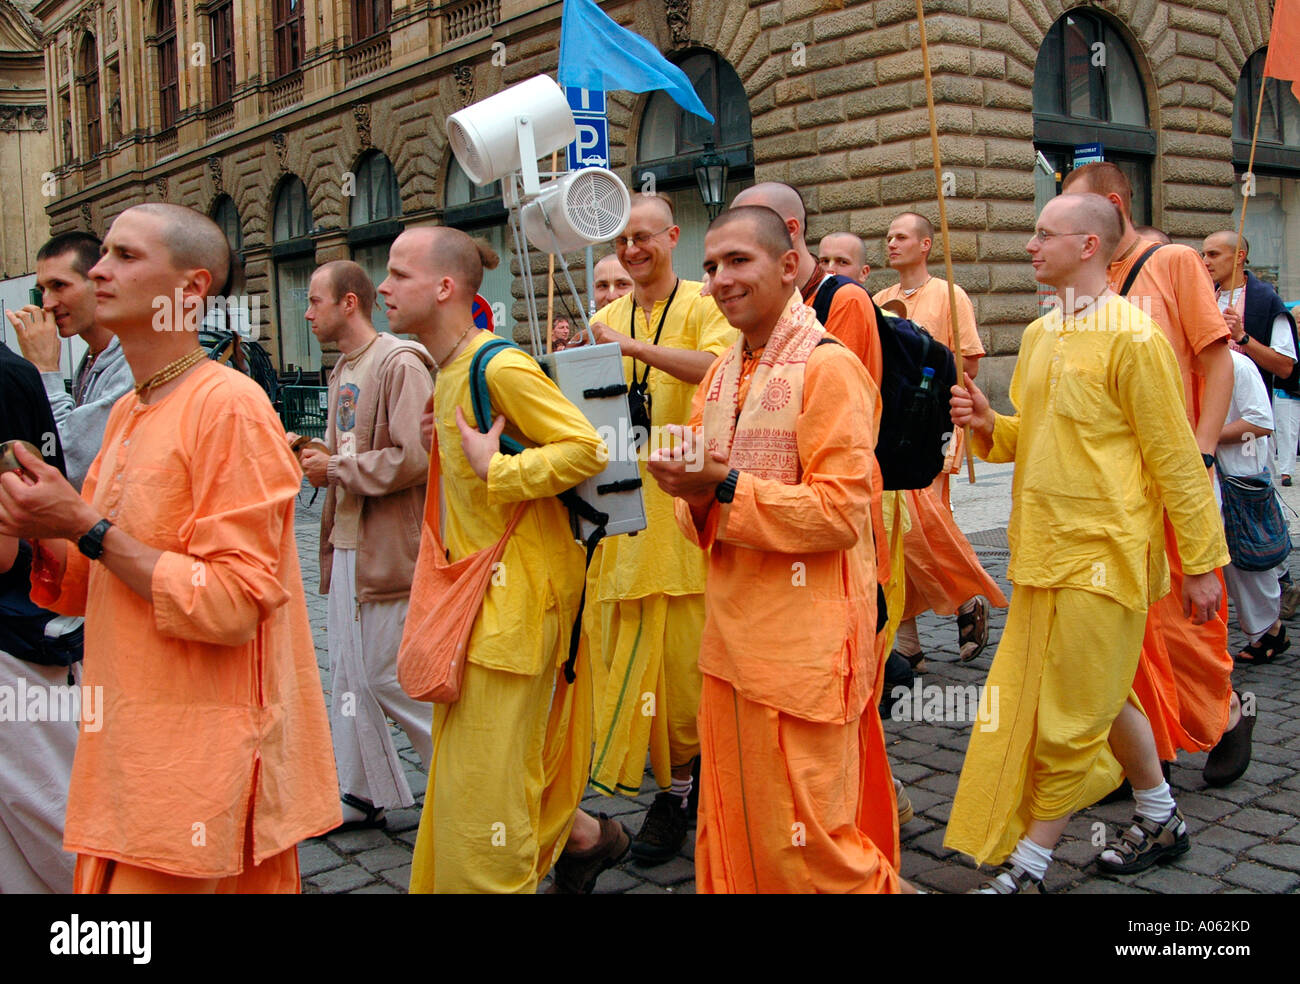 street-chanting-of-hare-krishna-by-harinamas-in-prague-czech-A062KD.jpg